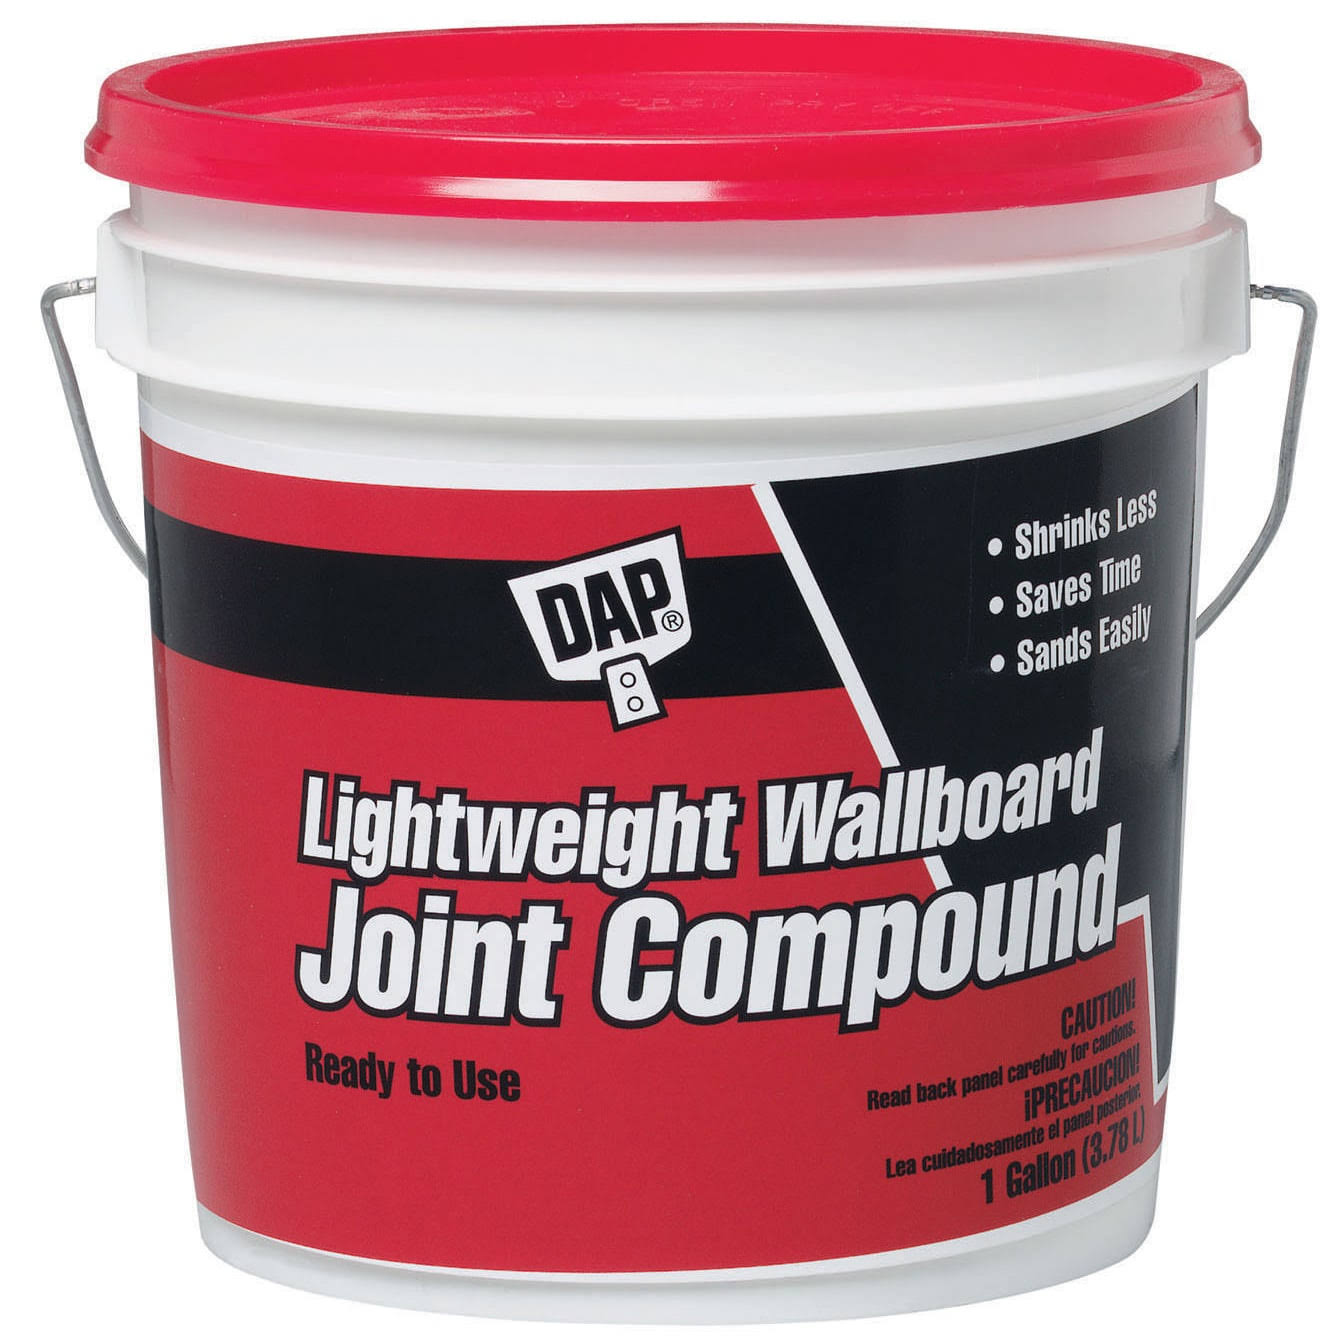 Dap Lightweight Wallboard Joint Compound - 1gal